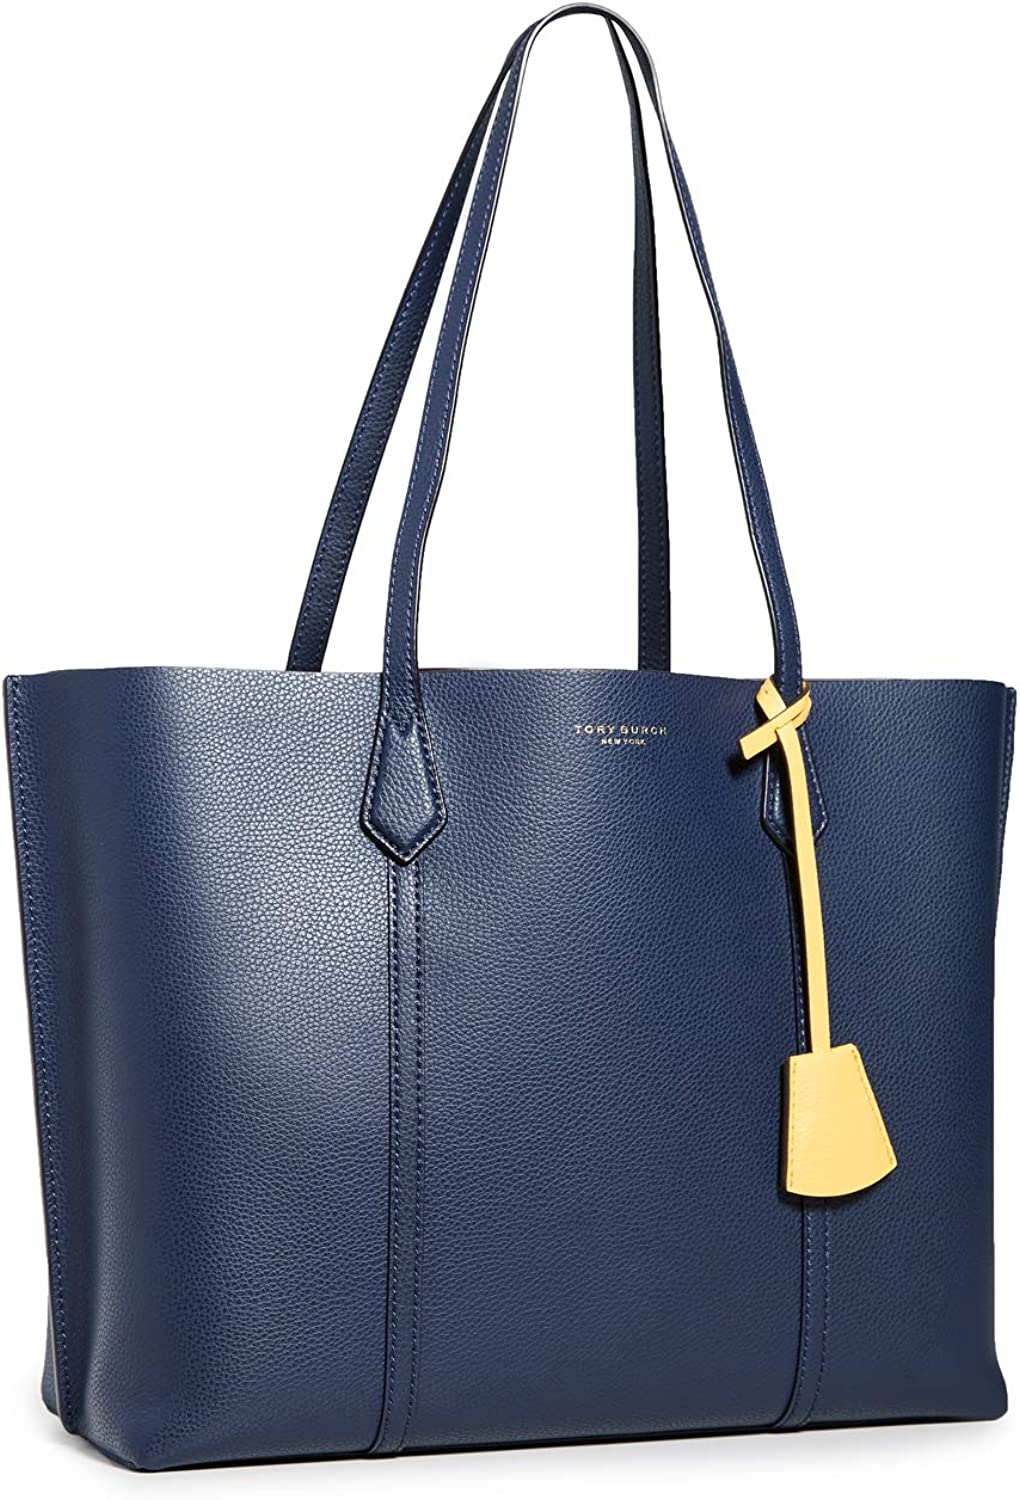 Tory Burch Women's Perry Tote